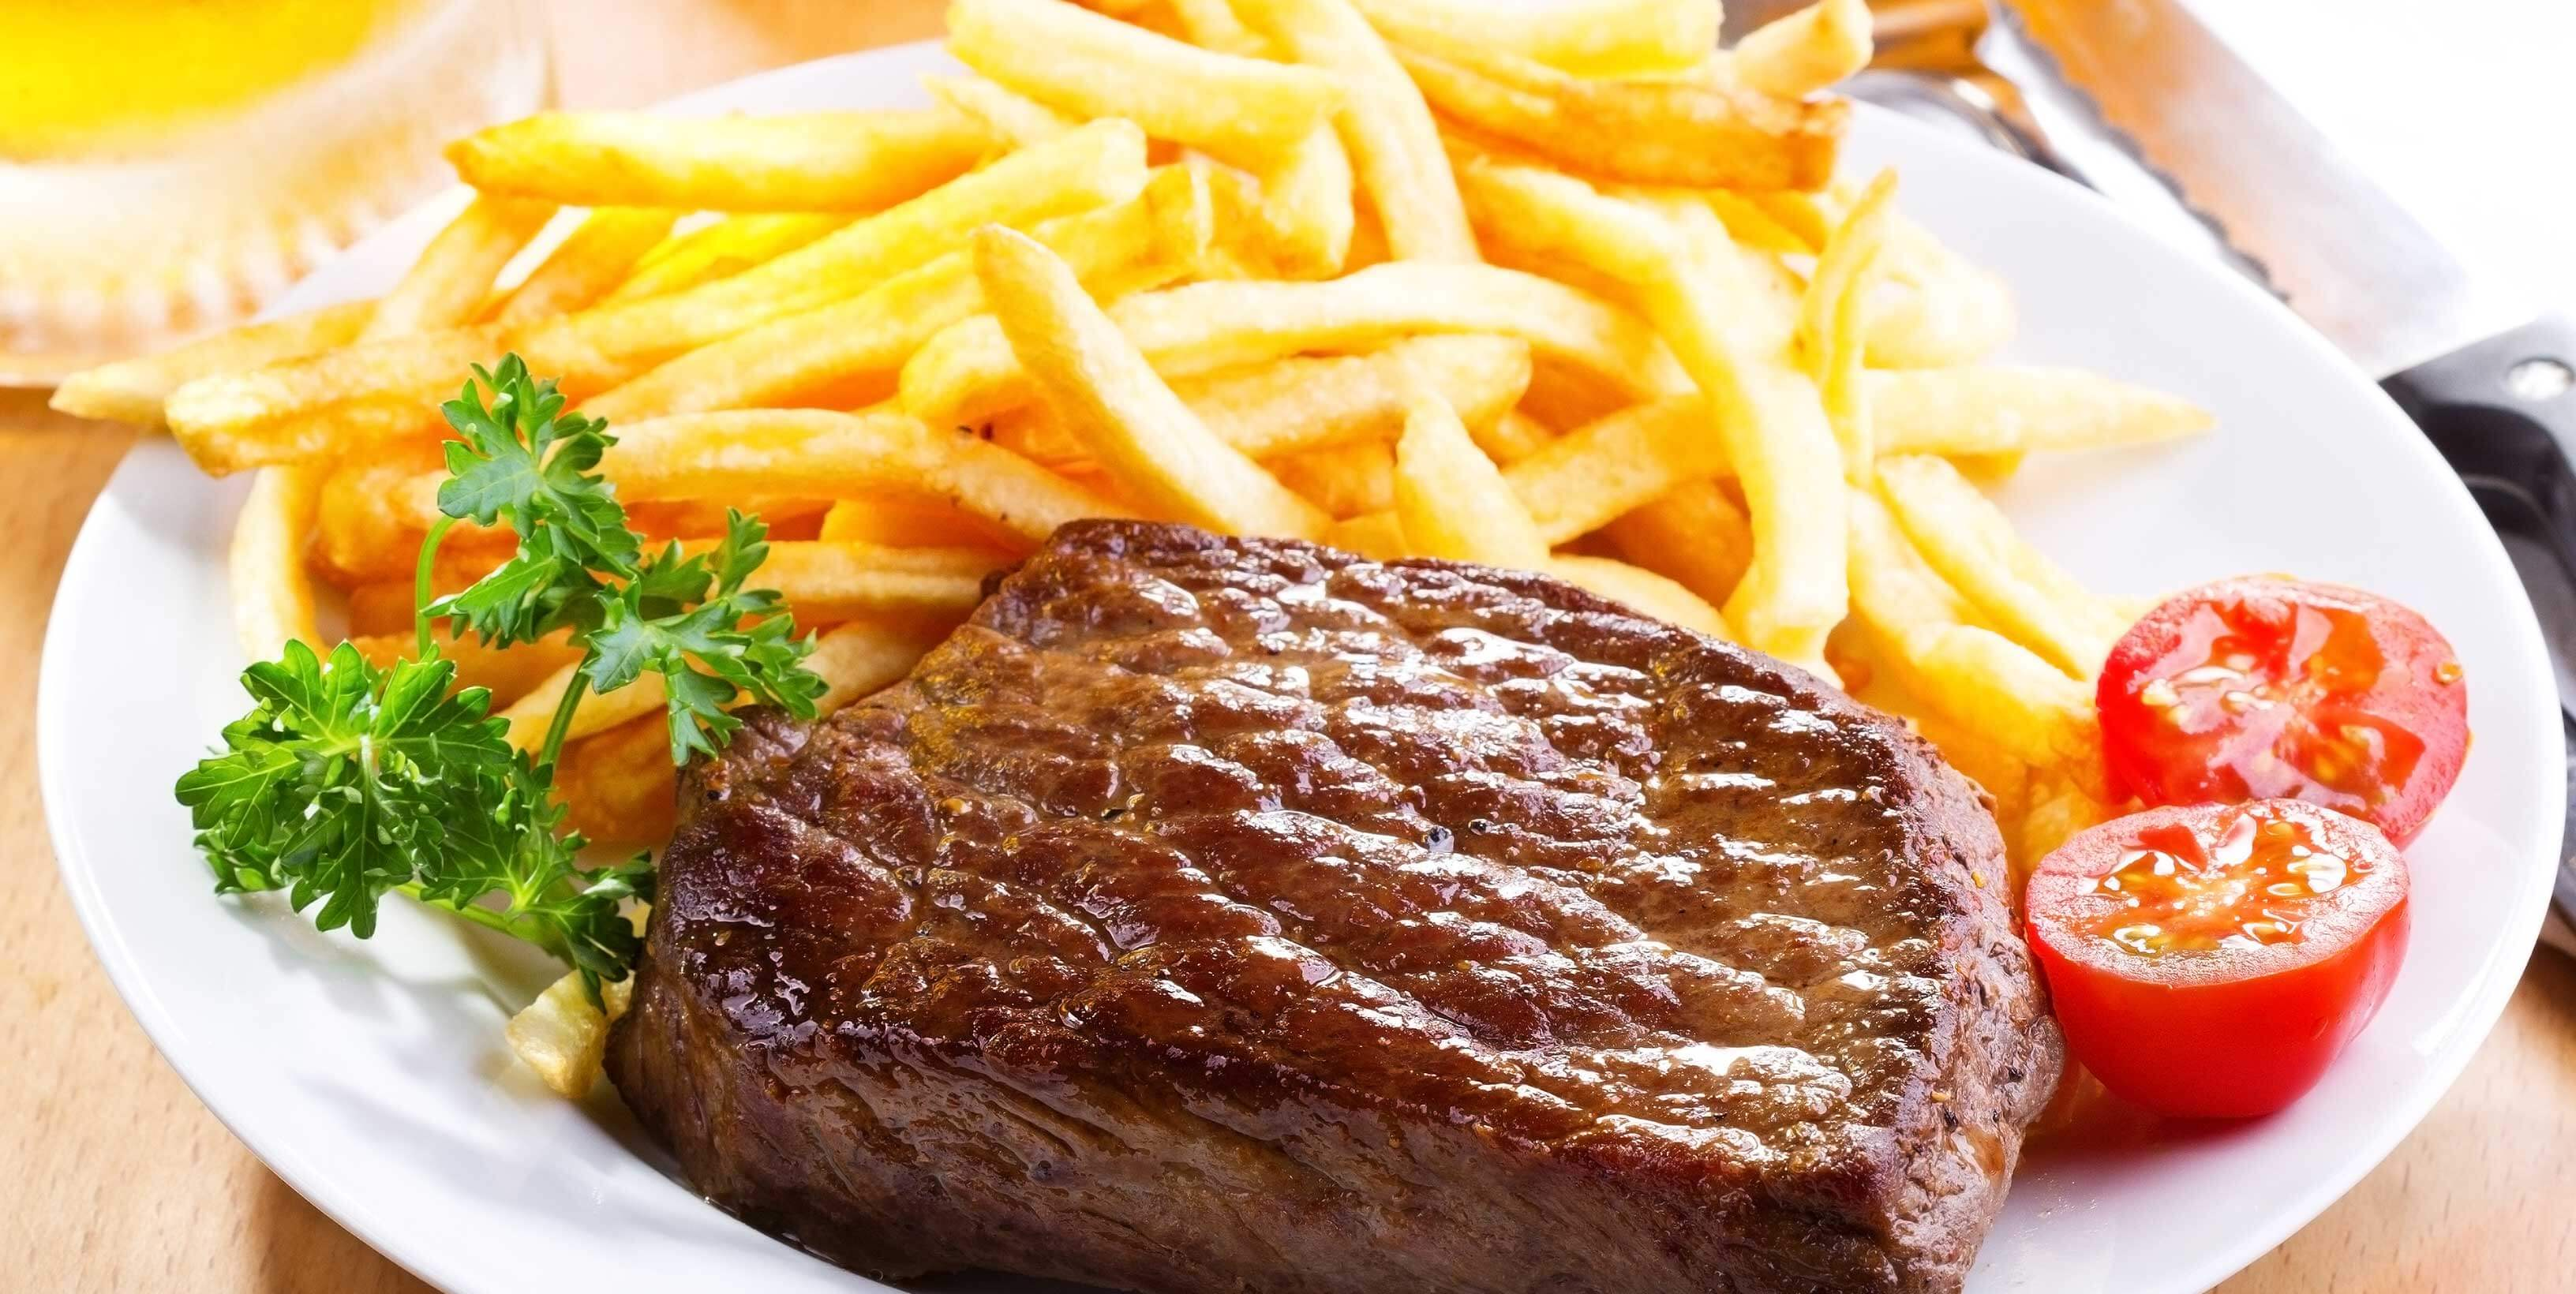 Plate of grilled steak and golden deep fried French Fries